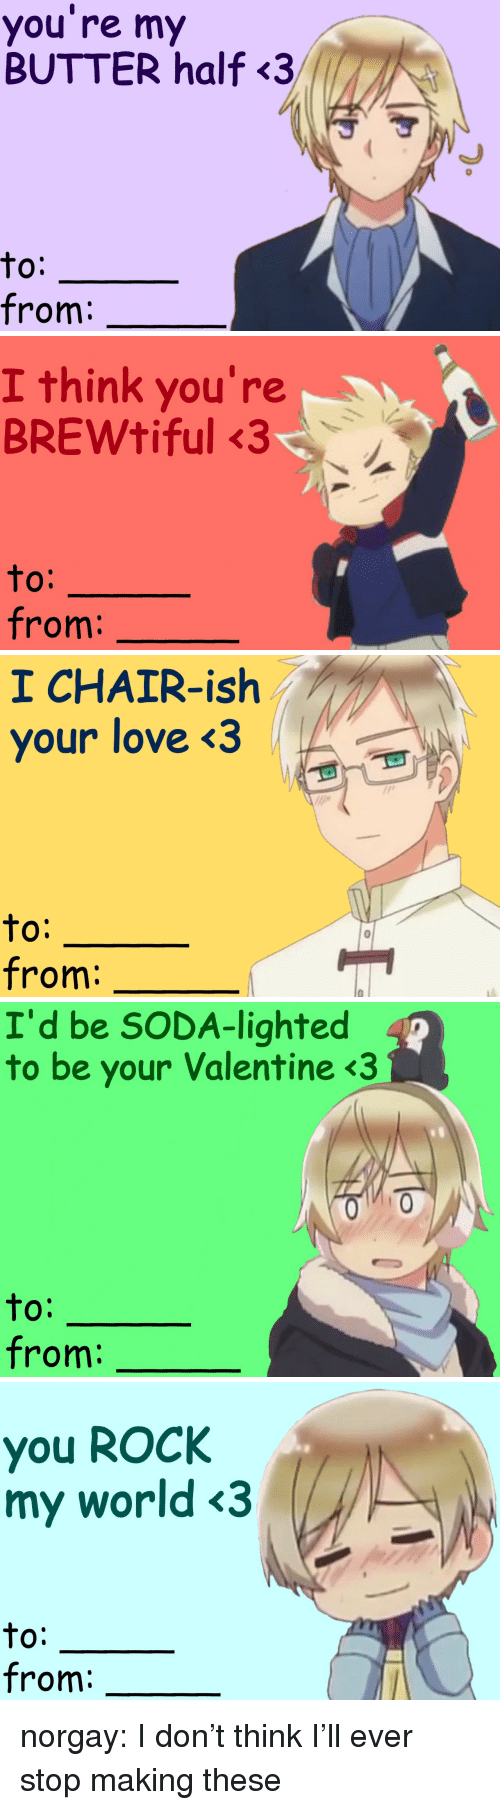 lighted: you re my  BUTTER half<3  to:  from:   I think you're  BREWtiful 3  O:  from   1 CHAIR-ish  your love <3  to:  from:   I'd be SODA-lighted  to be your Valentine <3  0:  from:   you ROCk  my world <3  to:  from: norgay:  I don't think I'll ever stop making these